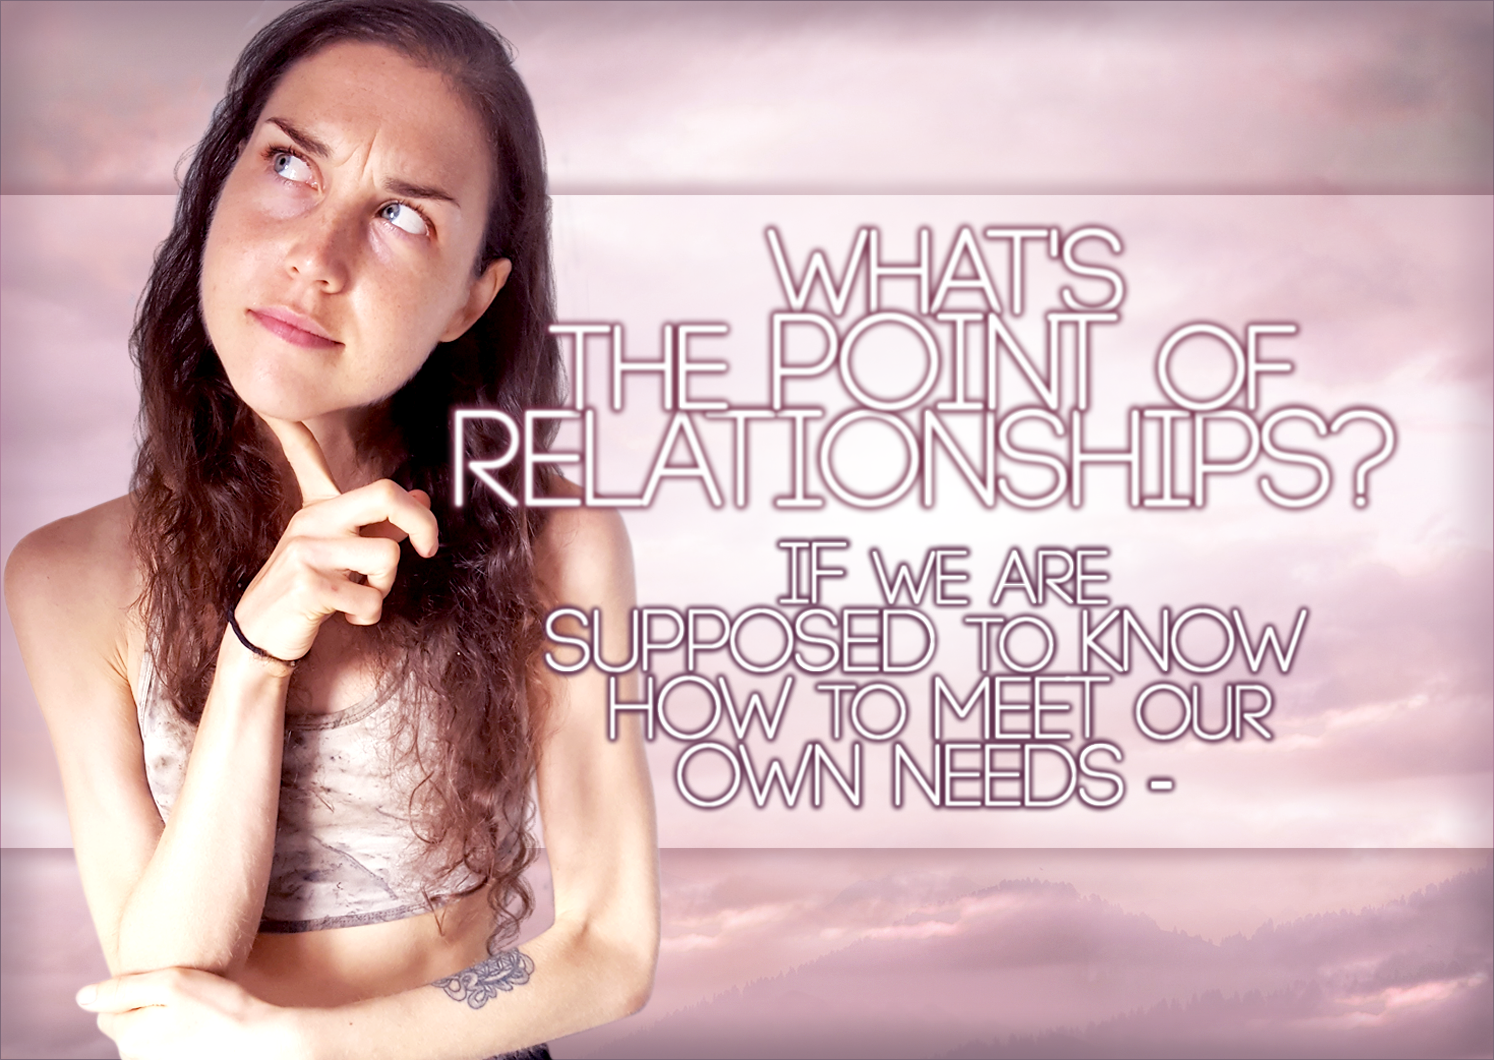 If We Are Supposed To Know How To Meet Our Own Needs – What's The Point Of Relationships?